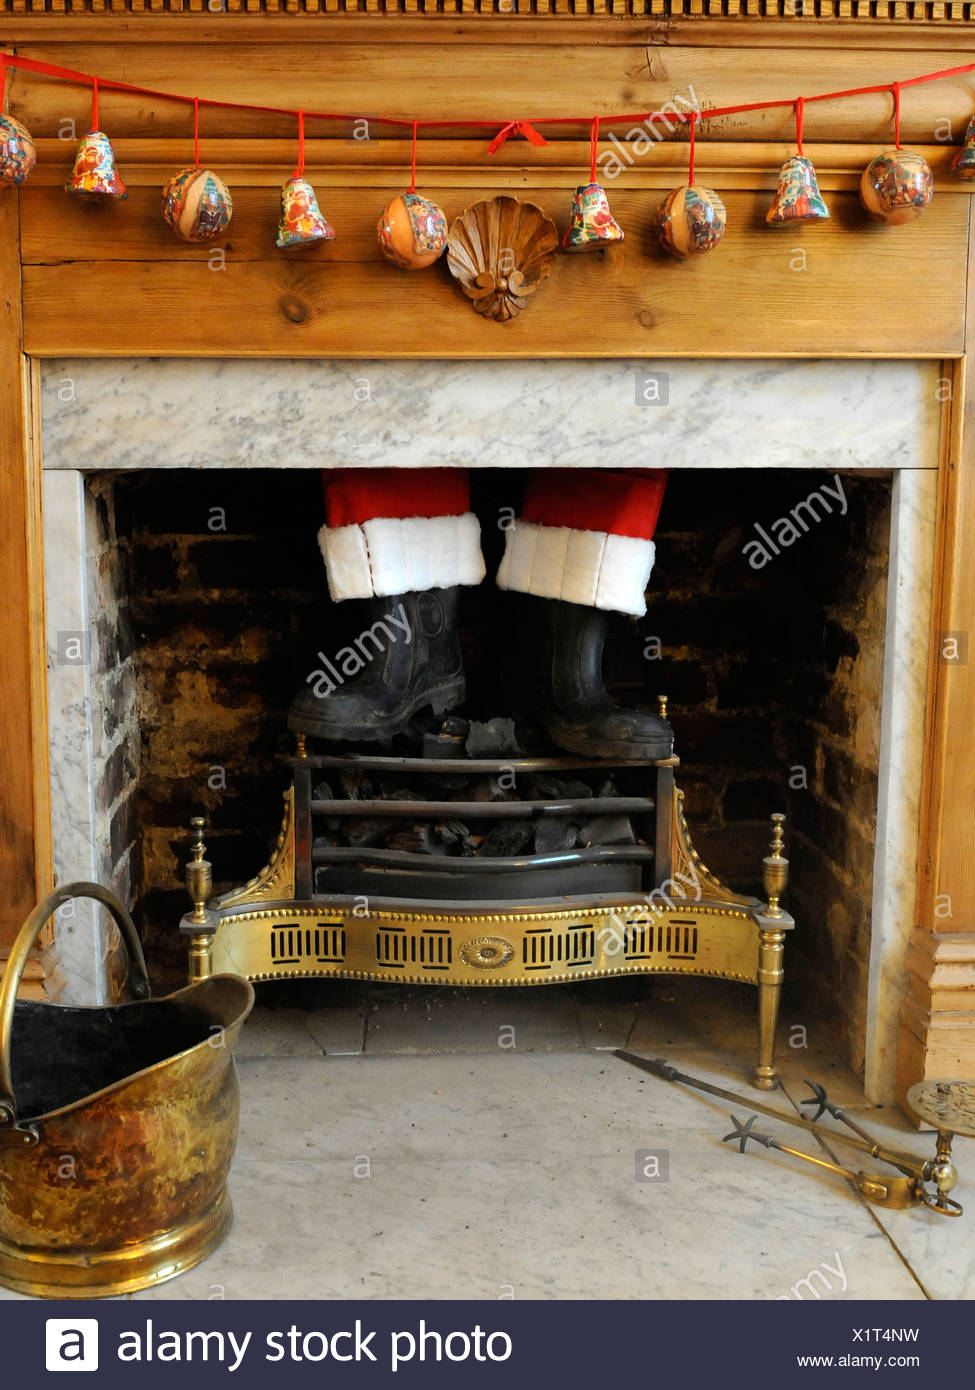 Father Christmas coming down the chimney - Stock Image